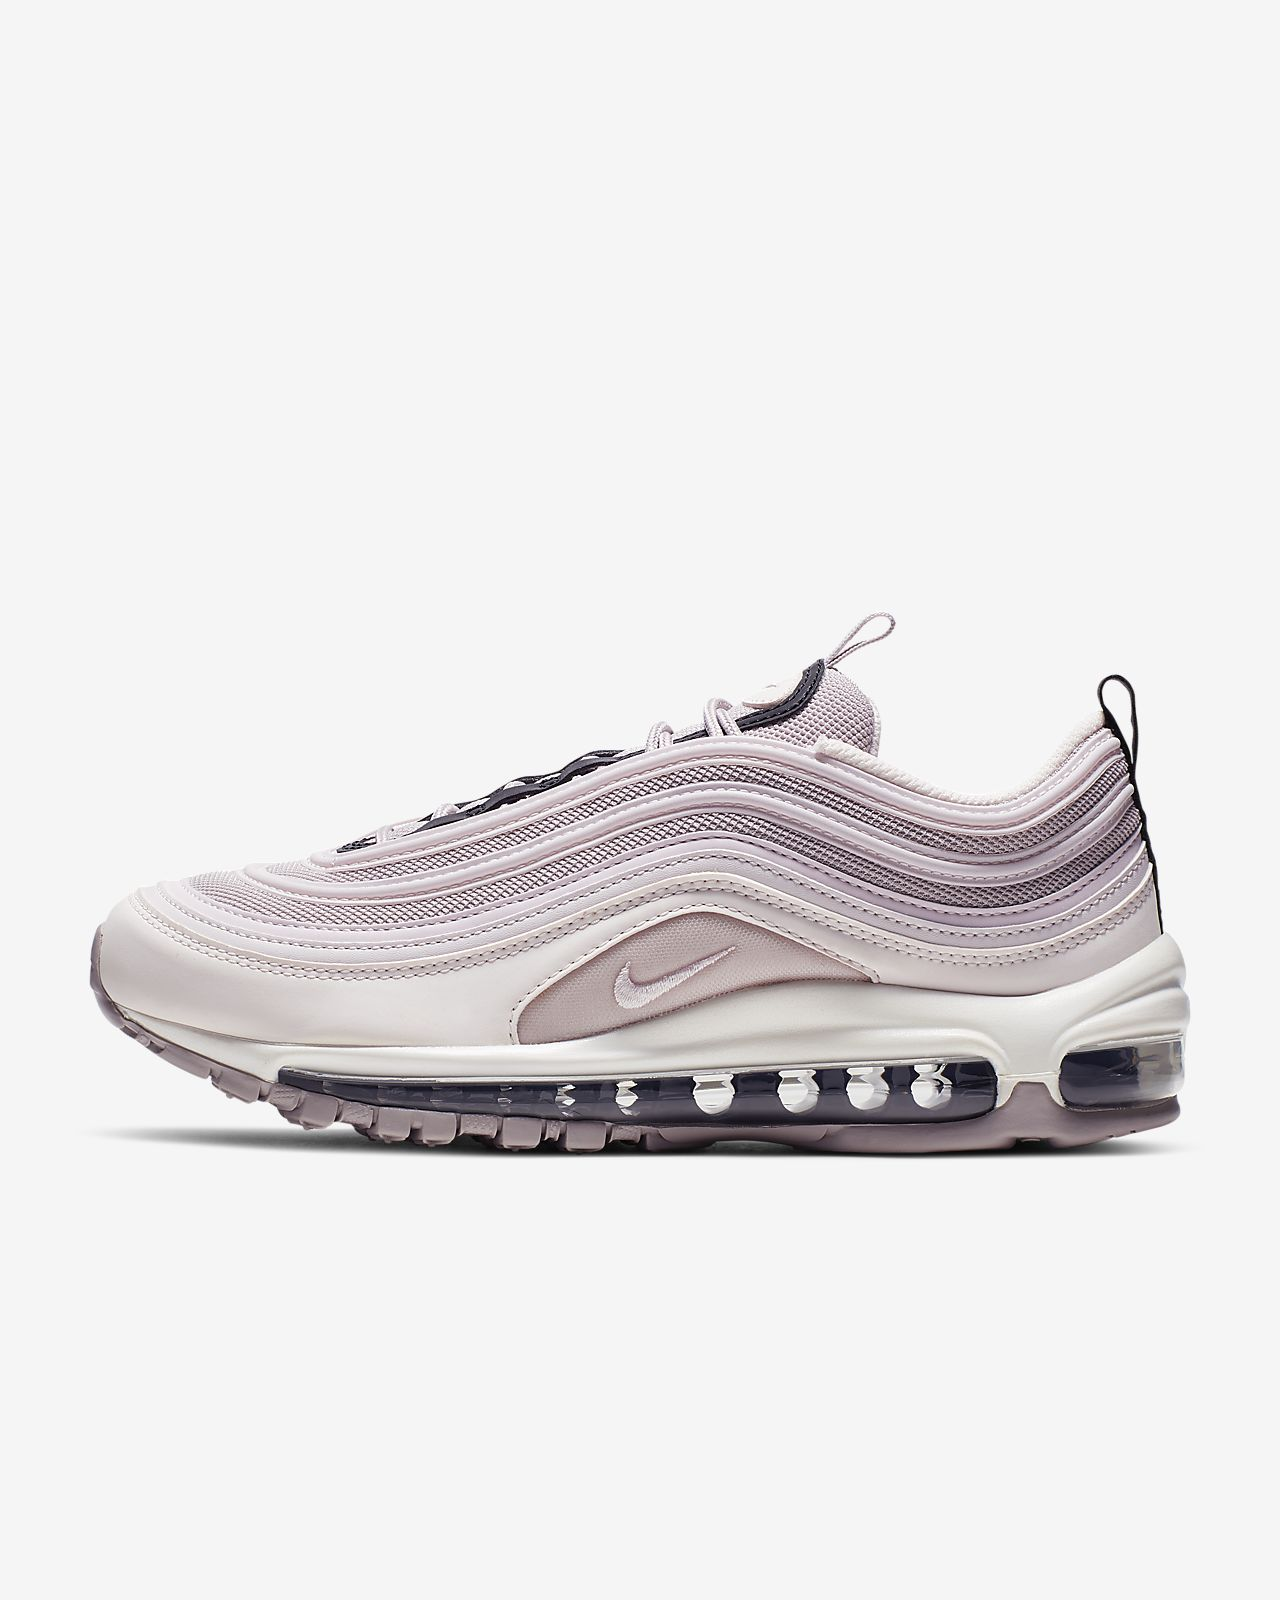 official photos 945c5 119b6 ... Nike Air Max 97 Women s Shoe